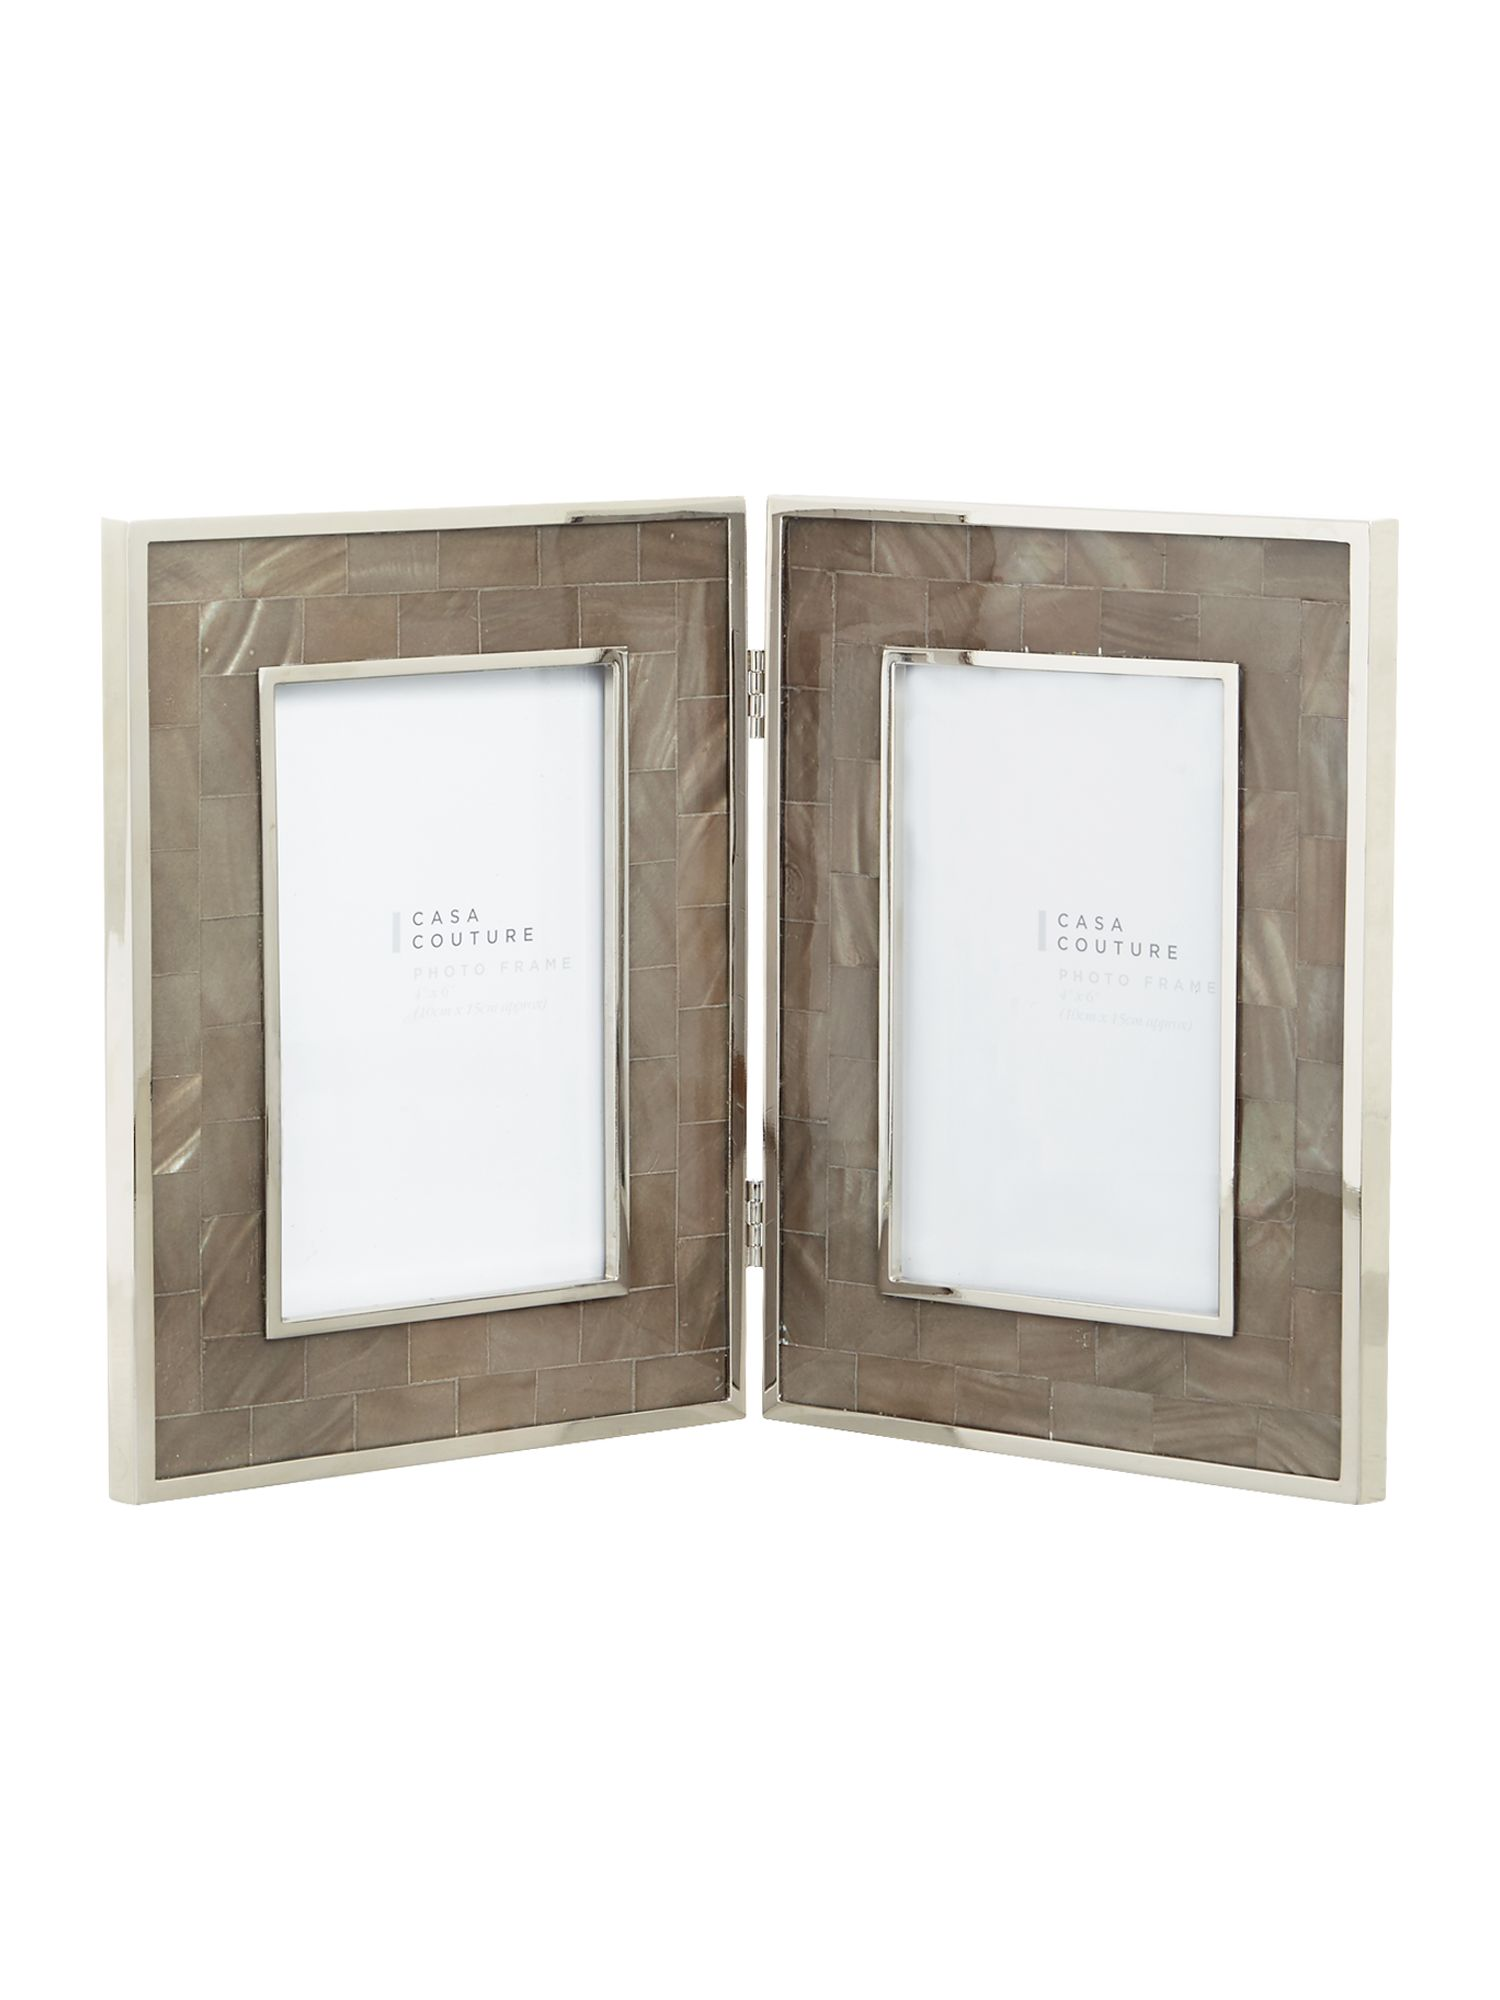 Casa Couture Casa Couture Grey Mother of pearl Hinged frame